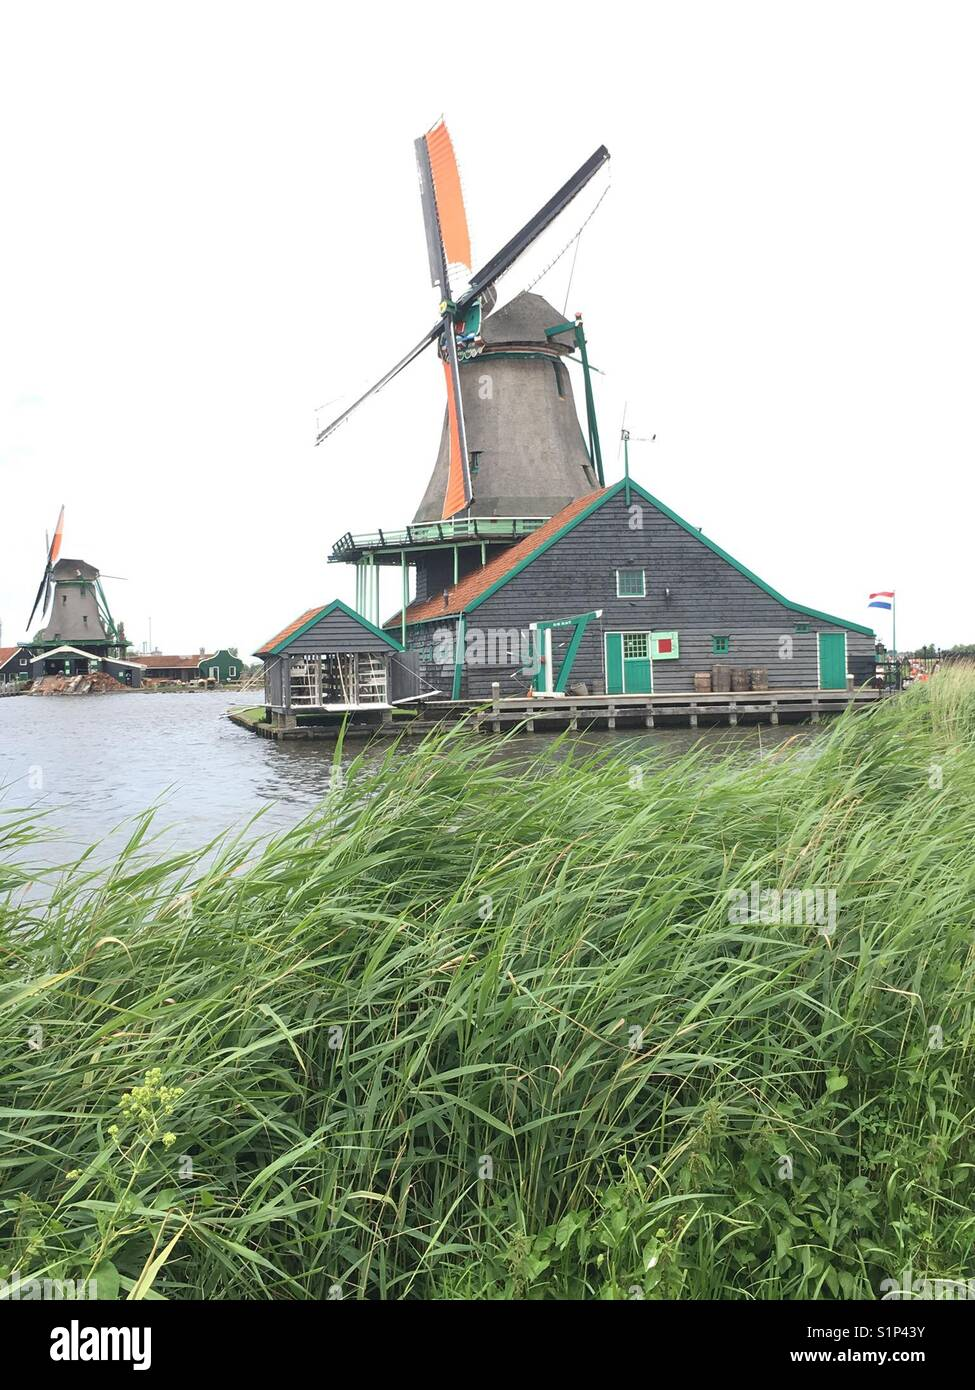 Windmill, Edam, Netherlands - Stock Image